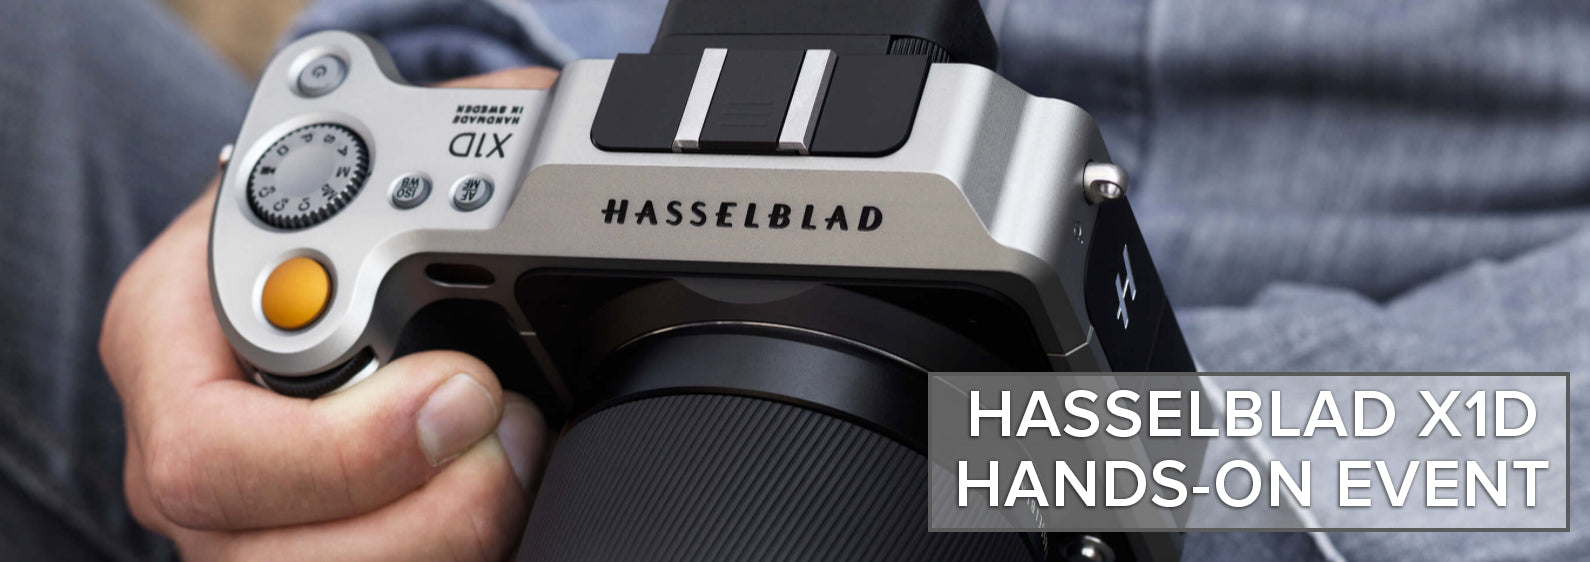 HASSELBLAD 1XD BLOG